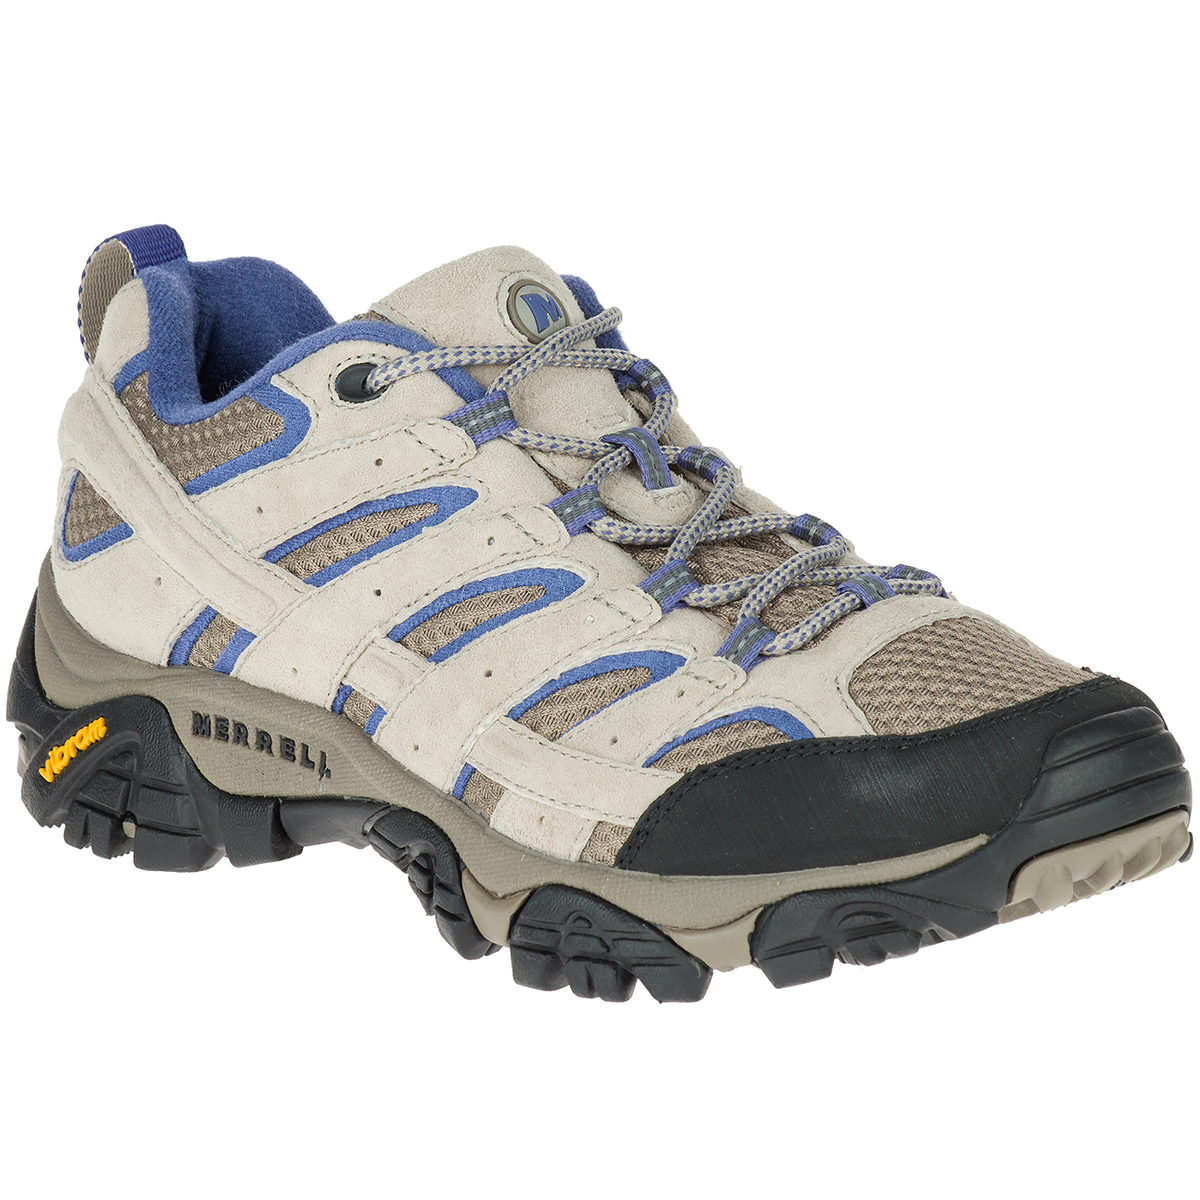 Merrell Women's Moab 2 Ventilator Hiking Shoes, Aluminum/marlin - Black, 5.5